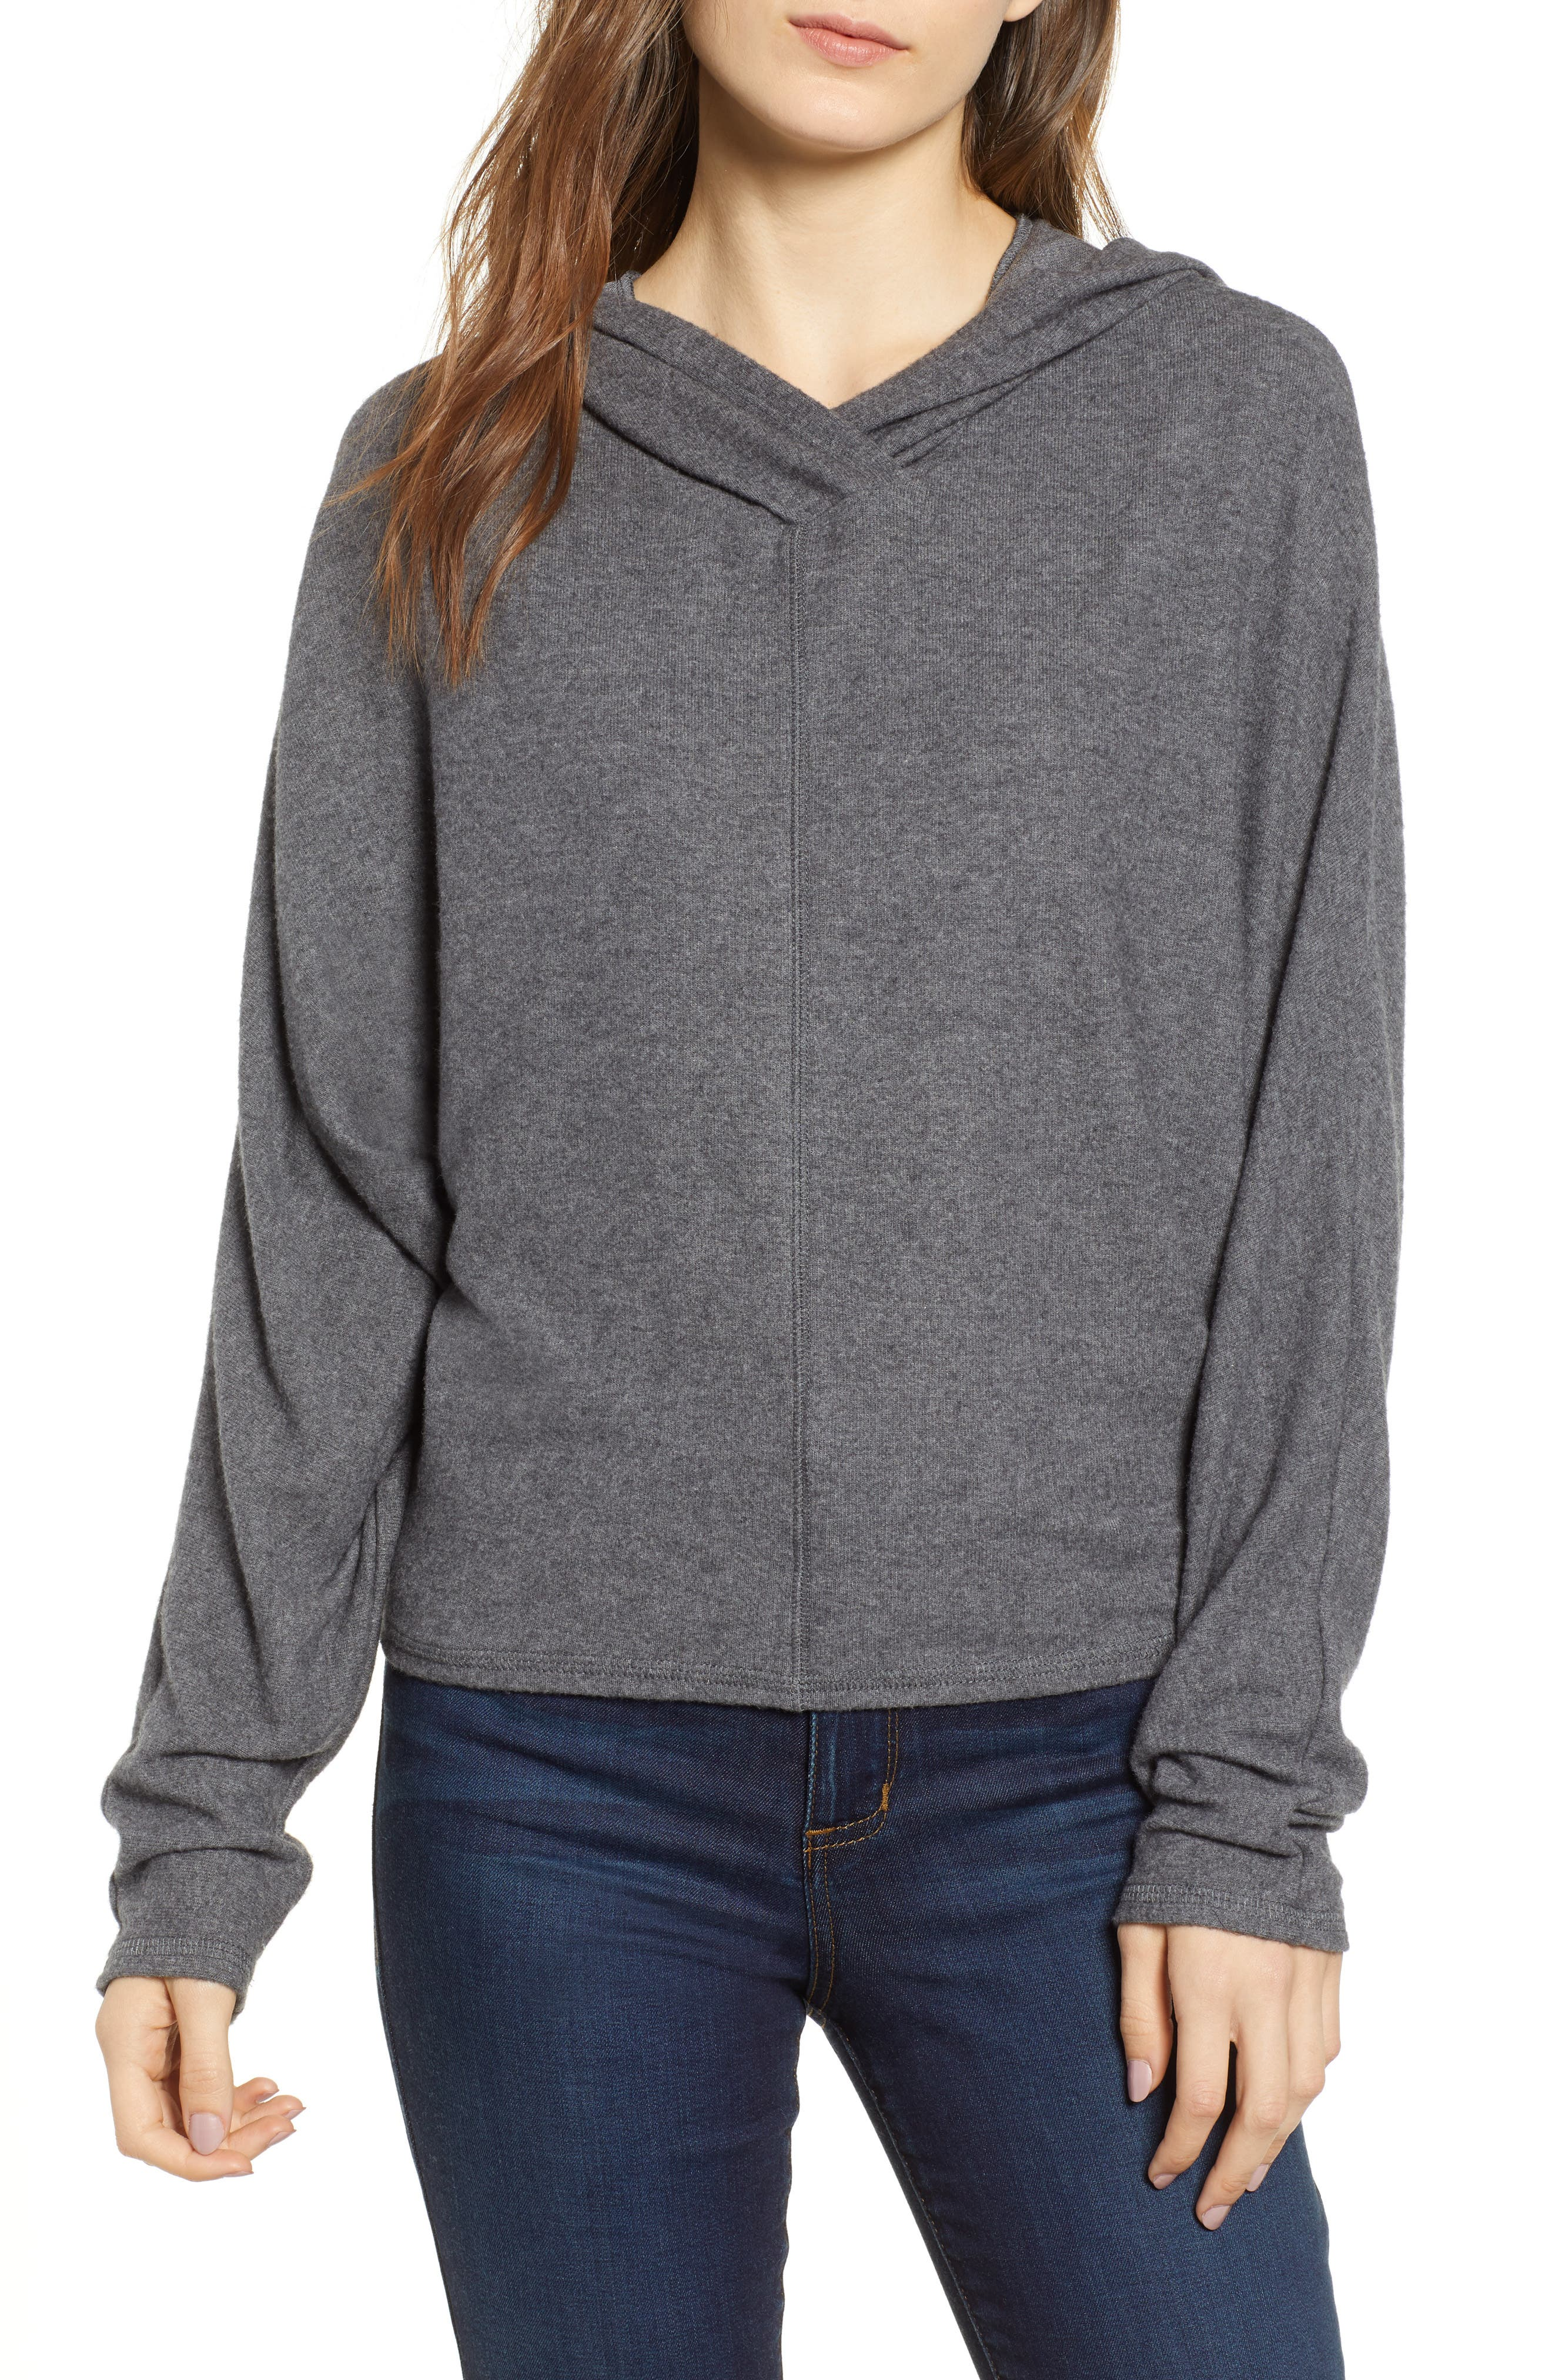 We Good To Go Hoodie,                         Main,                         color, CHARCOAL